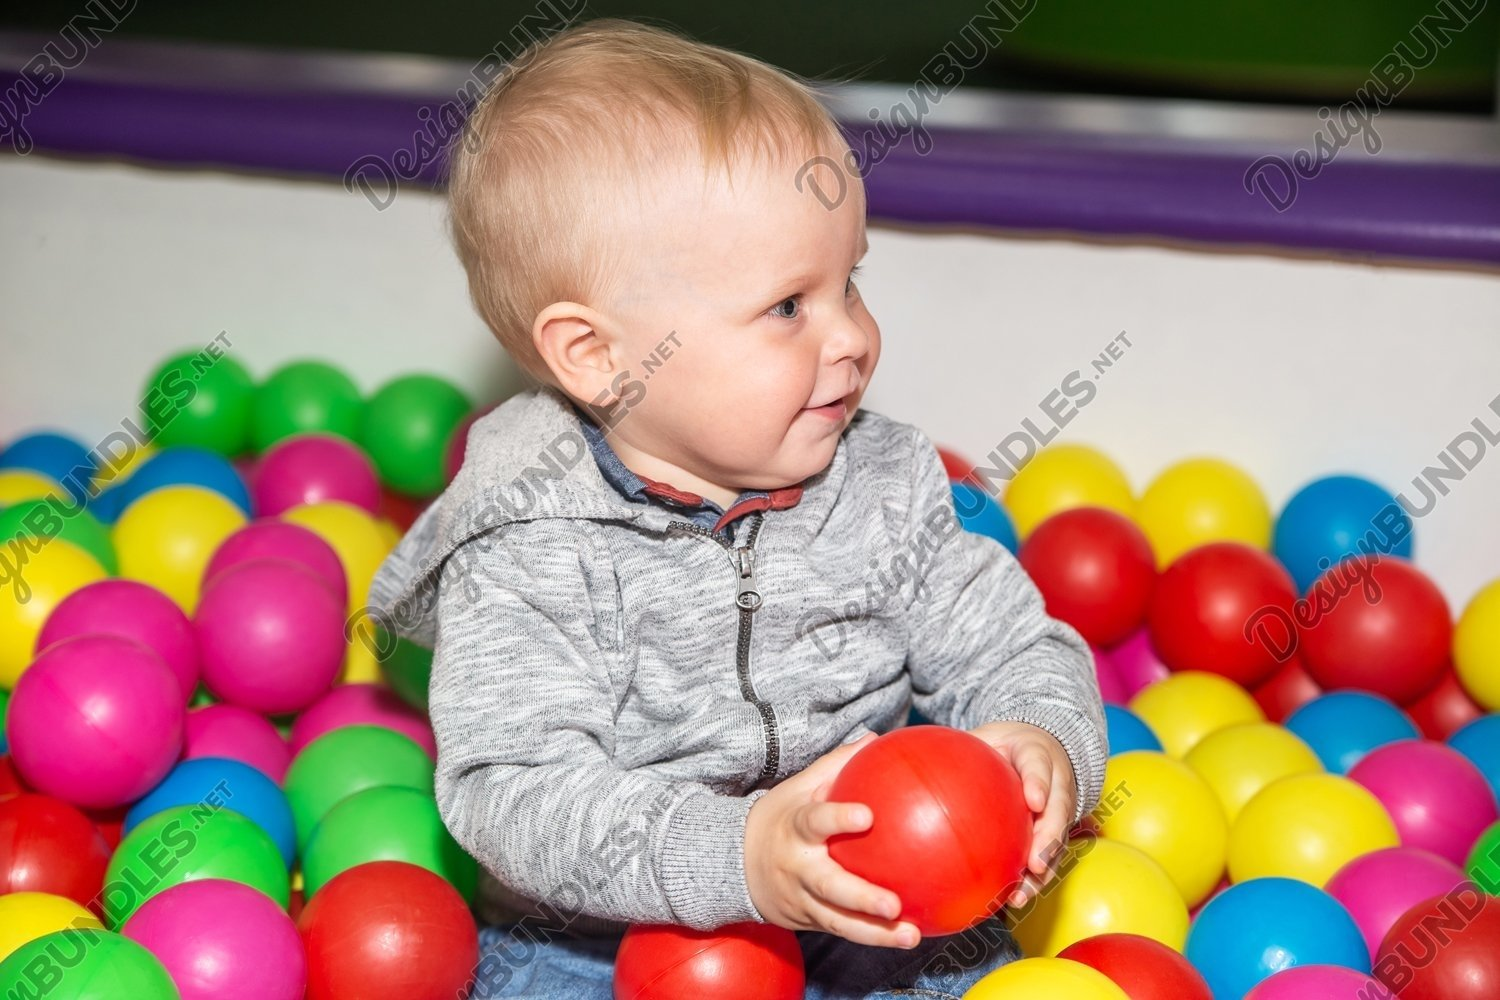 Photo of a ball pit poll at kids play center example image 1